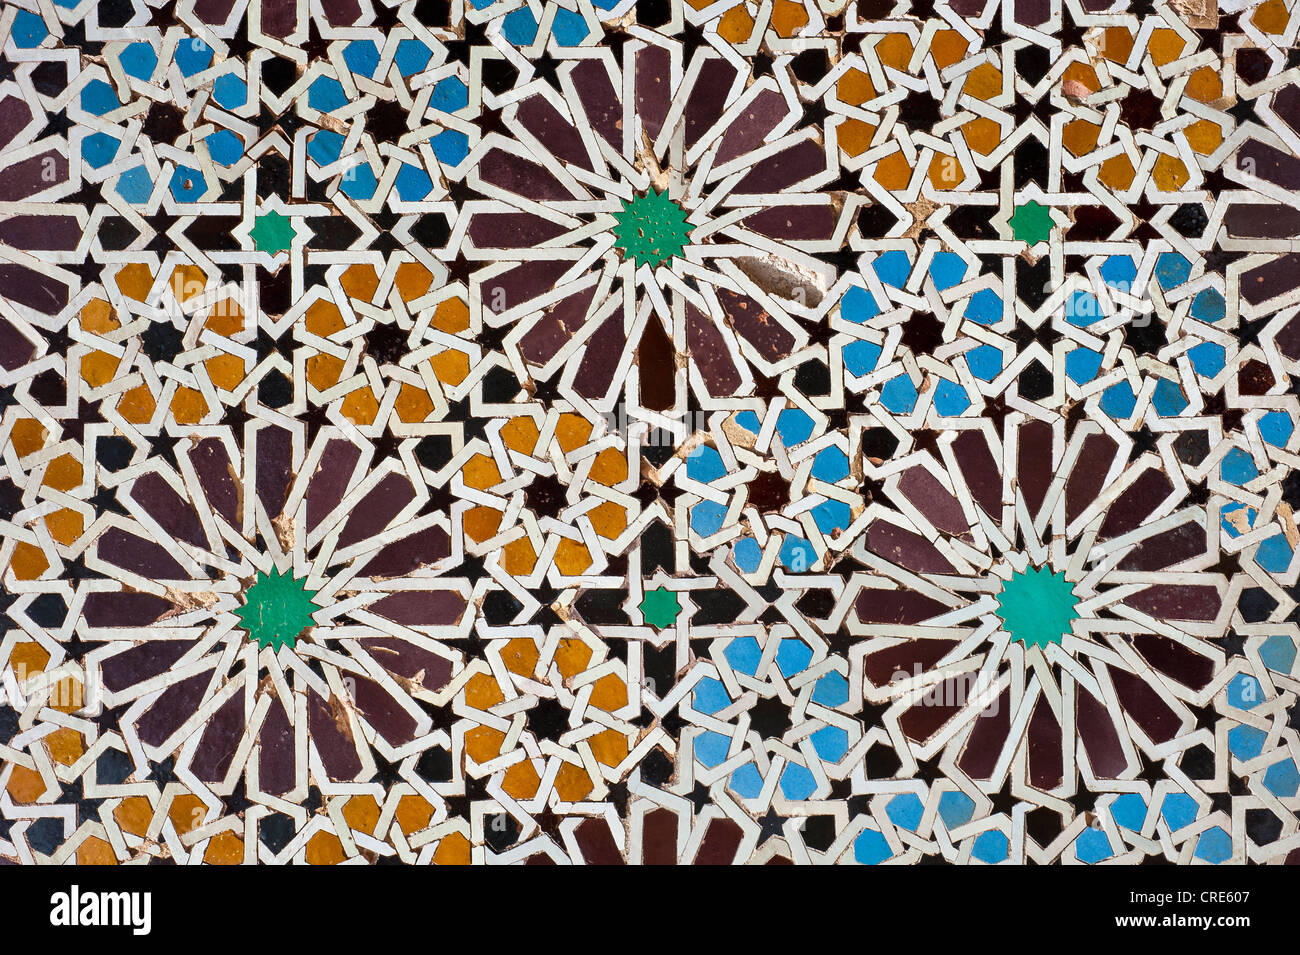 Tiles marrakech stockfotos tiles marrakech bilder alamy - Fliesen marokko ...